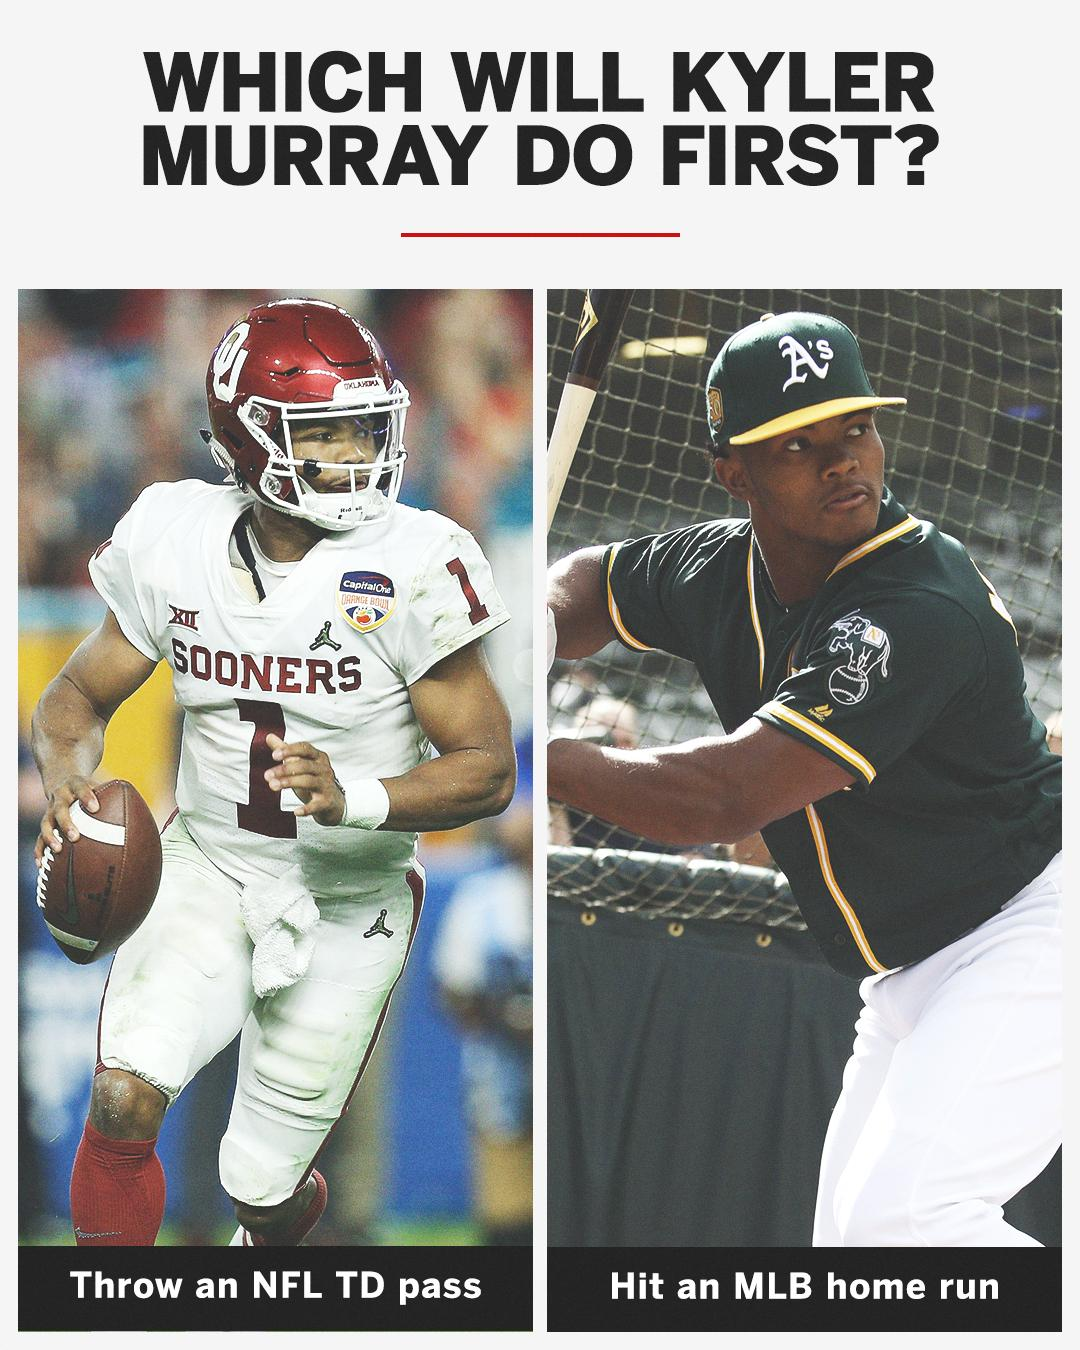 Kyler could do both, but which will he do first? https://t.co/JCsBuUDam8